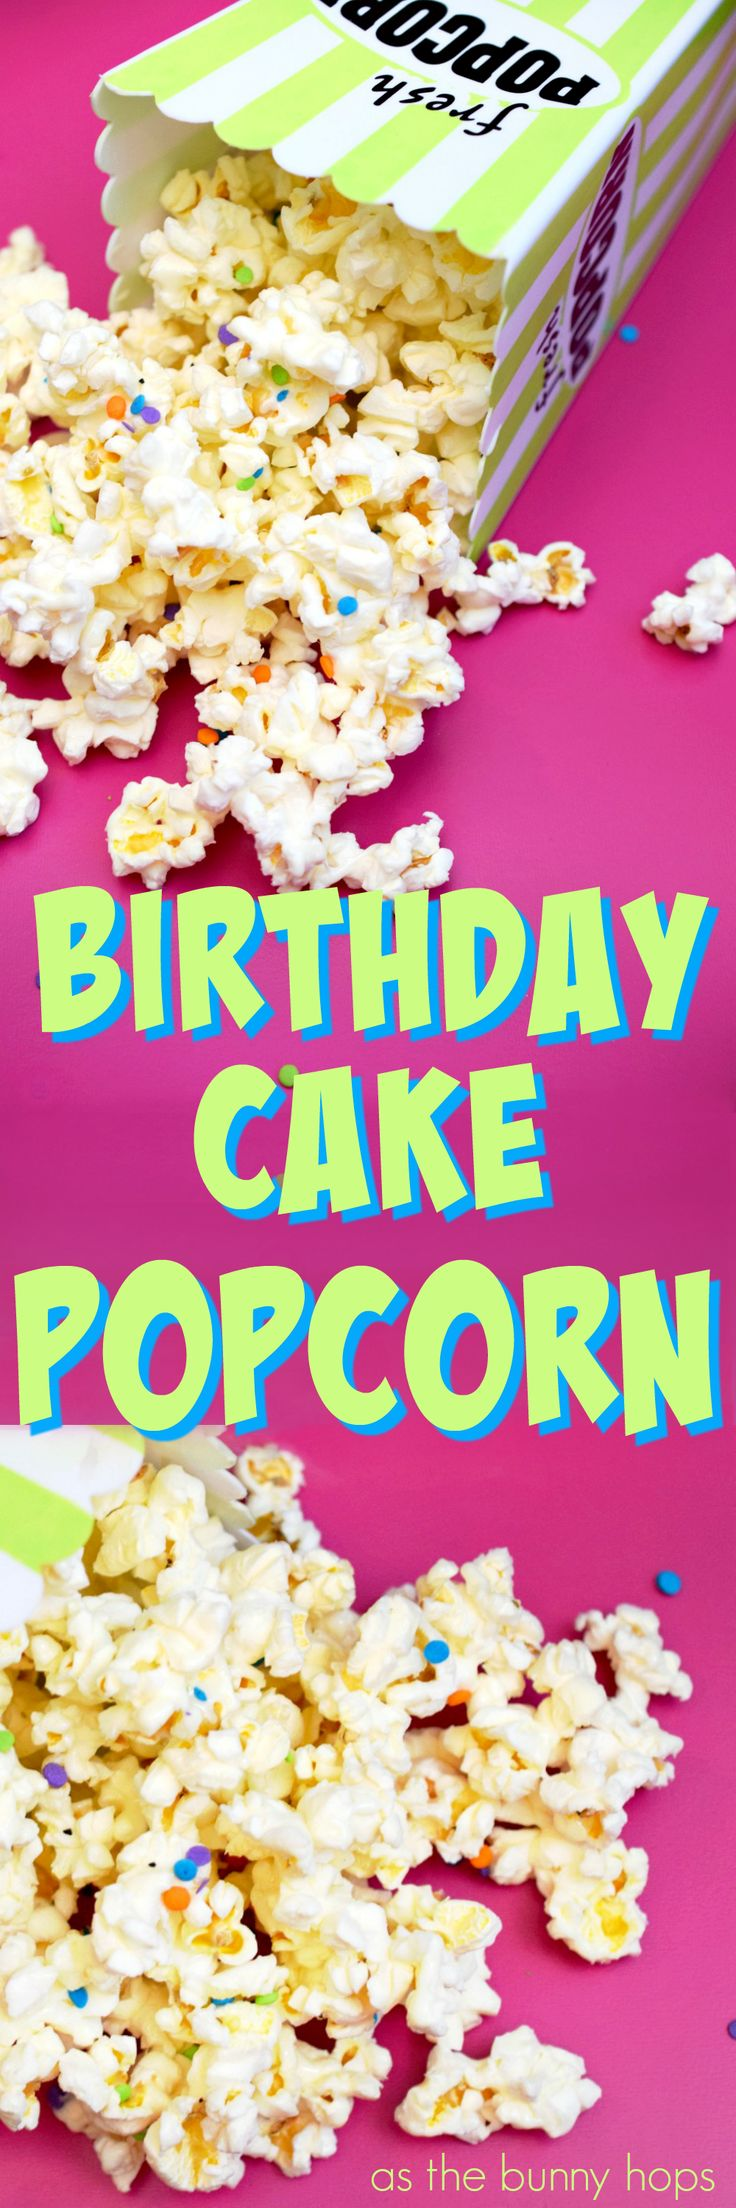 Celebrate family movie night with this easy birthday cake popcorn recipe! It's ready to enjoy in just a few minutes and it only requires three ingredients! AD #SummerIsForSavings